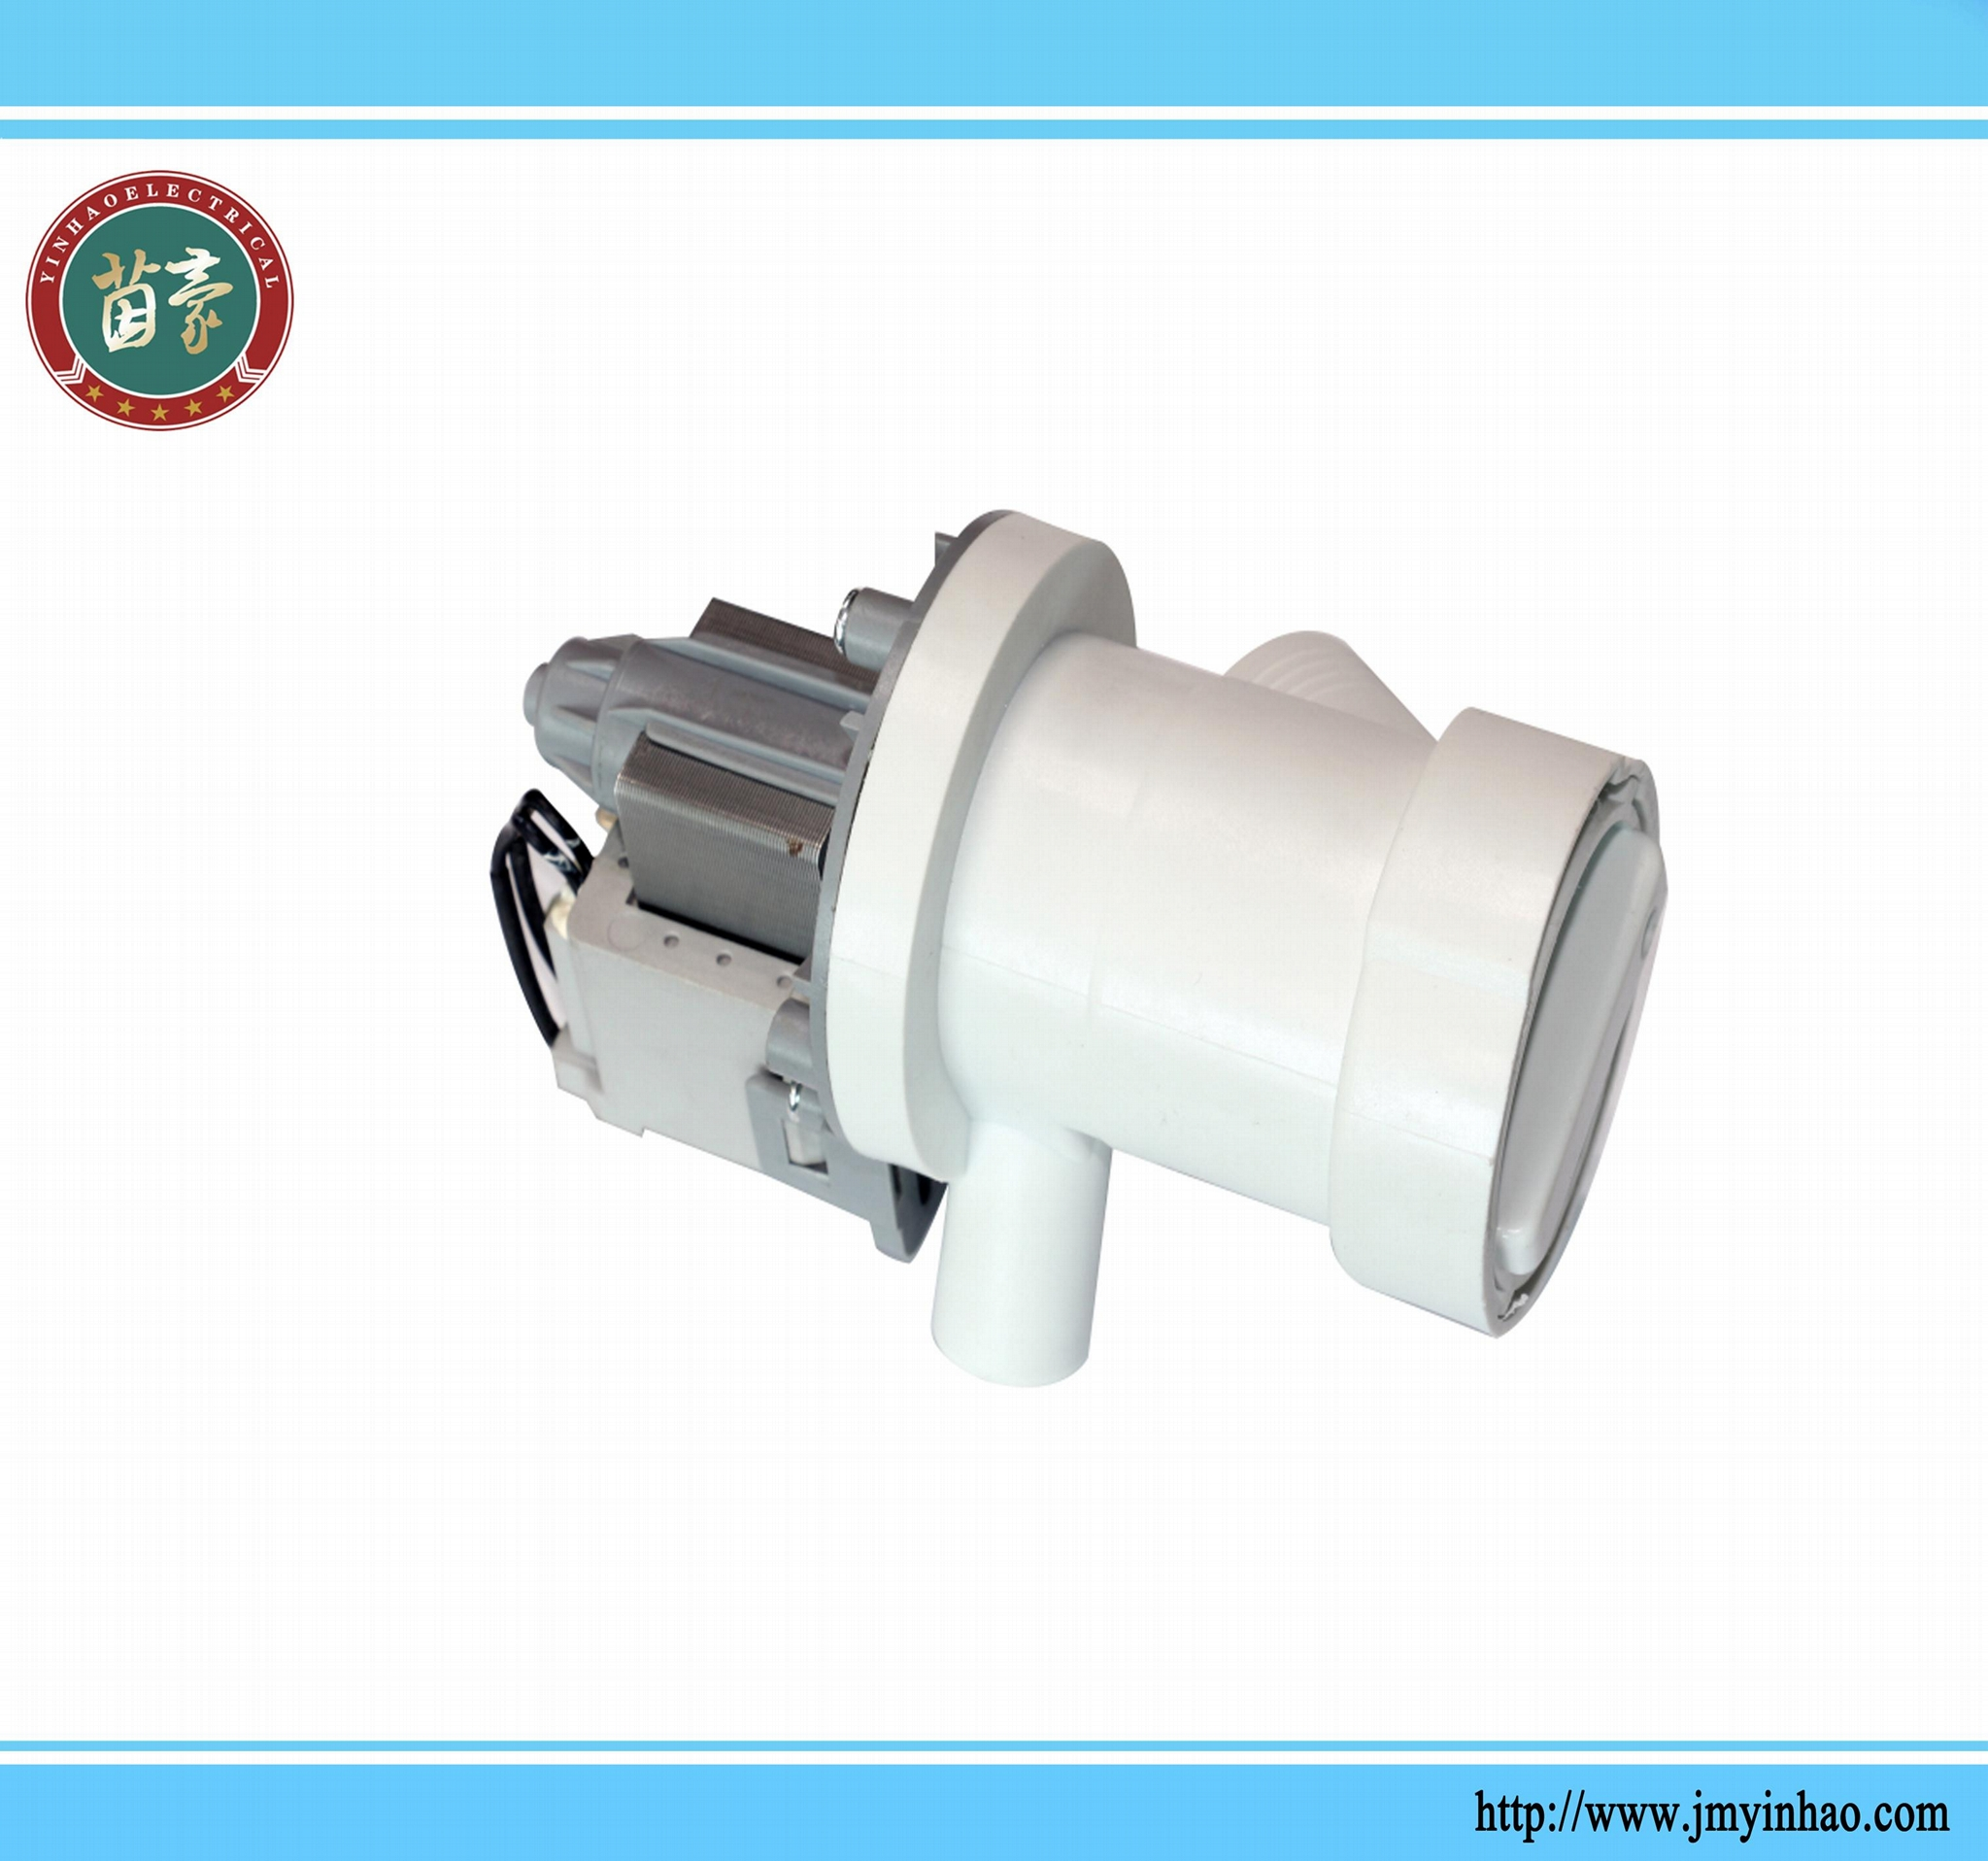 Permanent magnet synchronous drain pump for washing machine 1